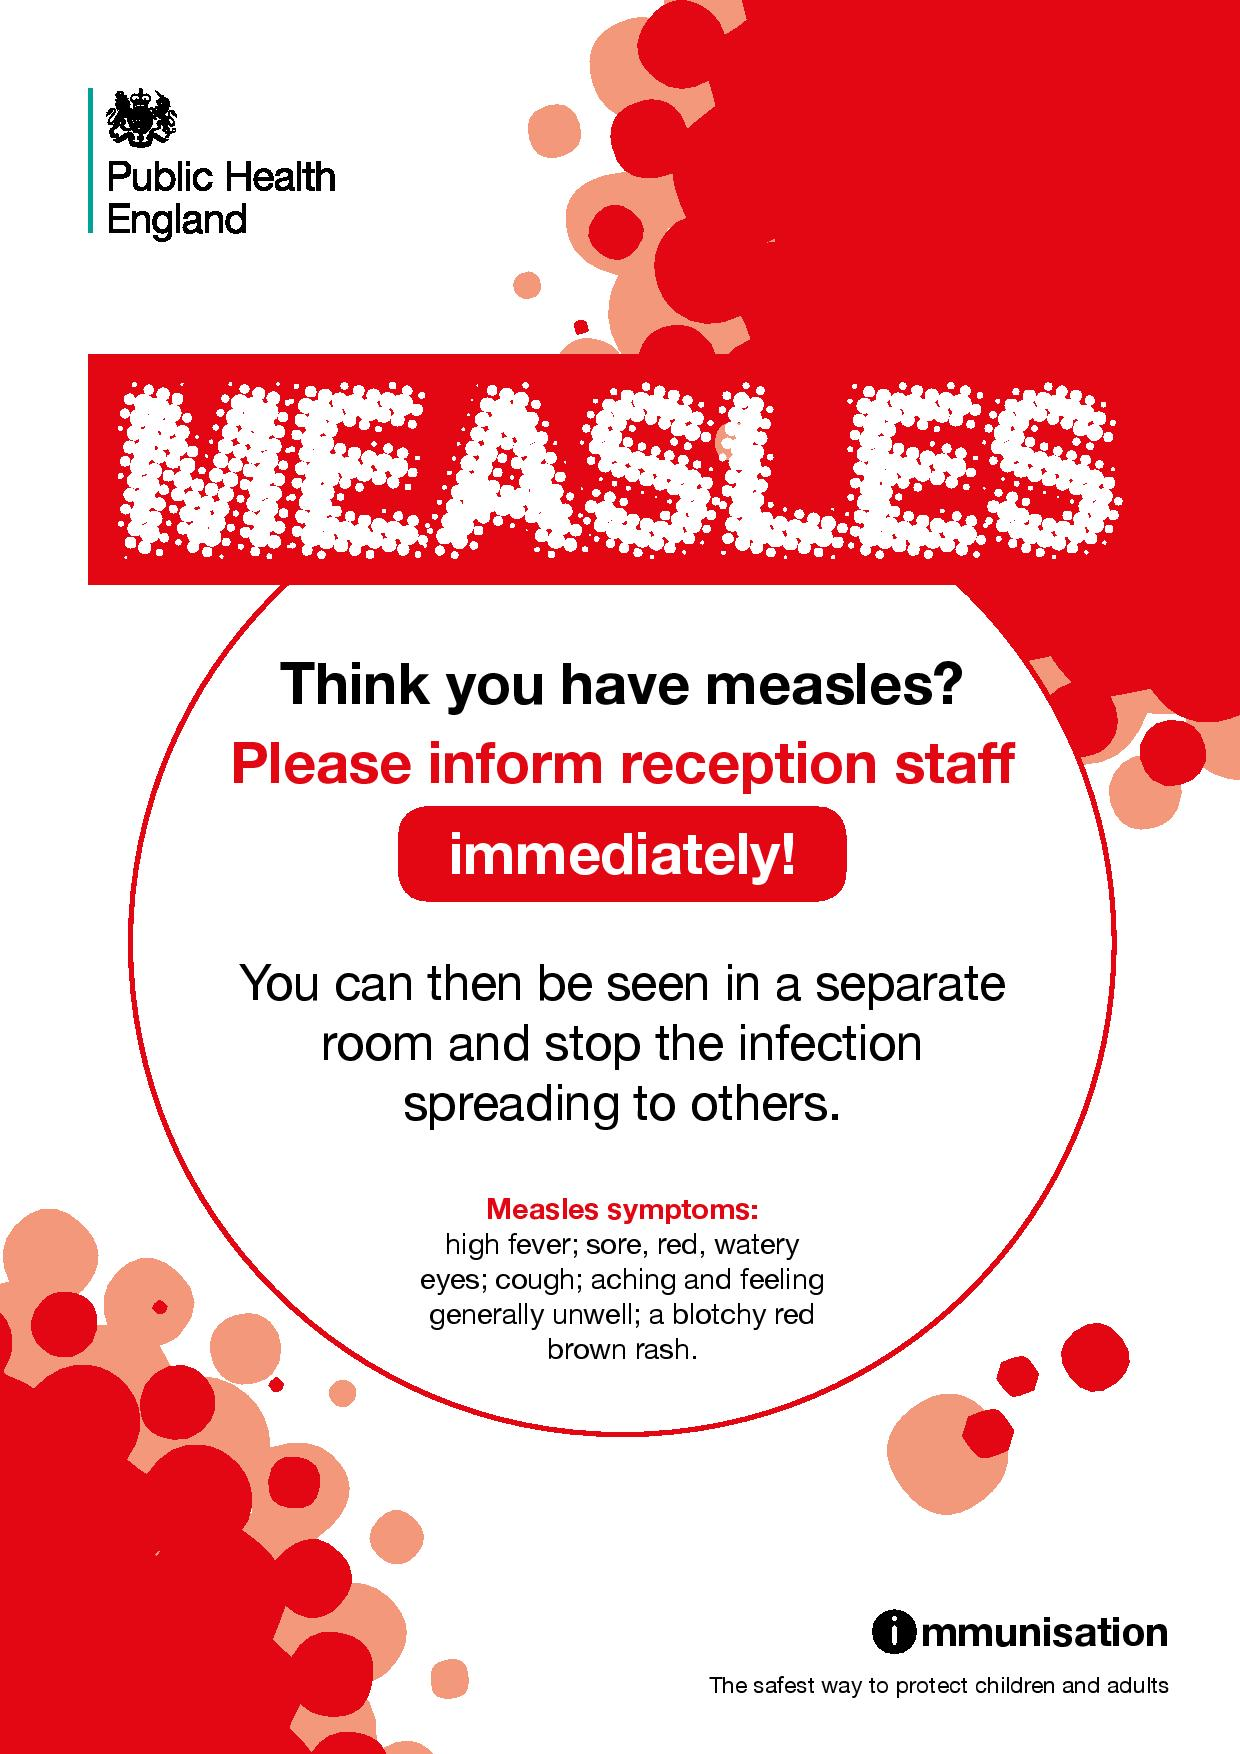 Think you have measles? Please inform reception staff immediately!